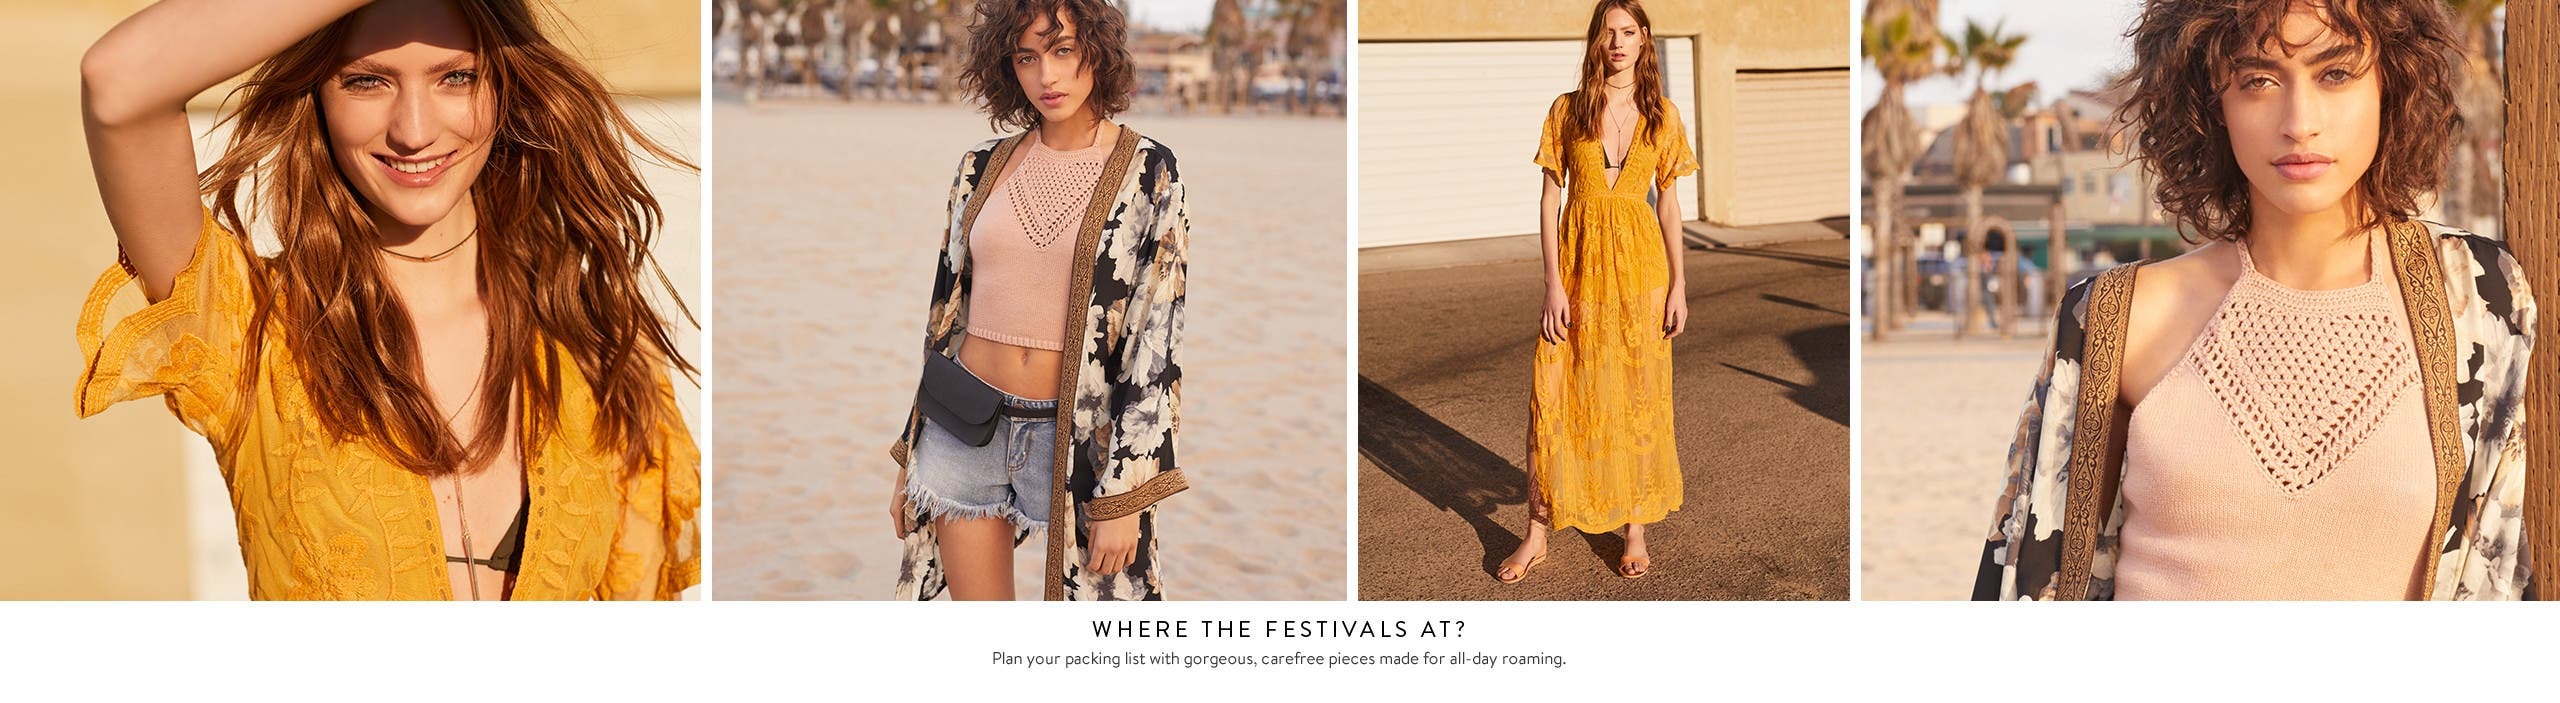 Where the festivals at? Women's trend clothing, shoes and accessories.